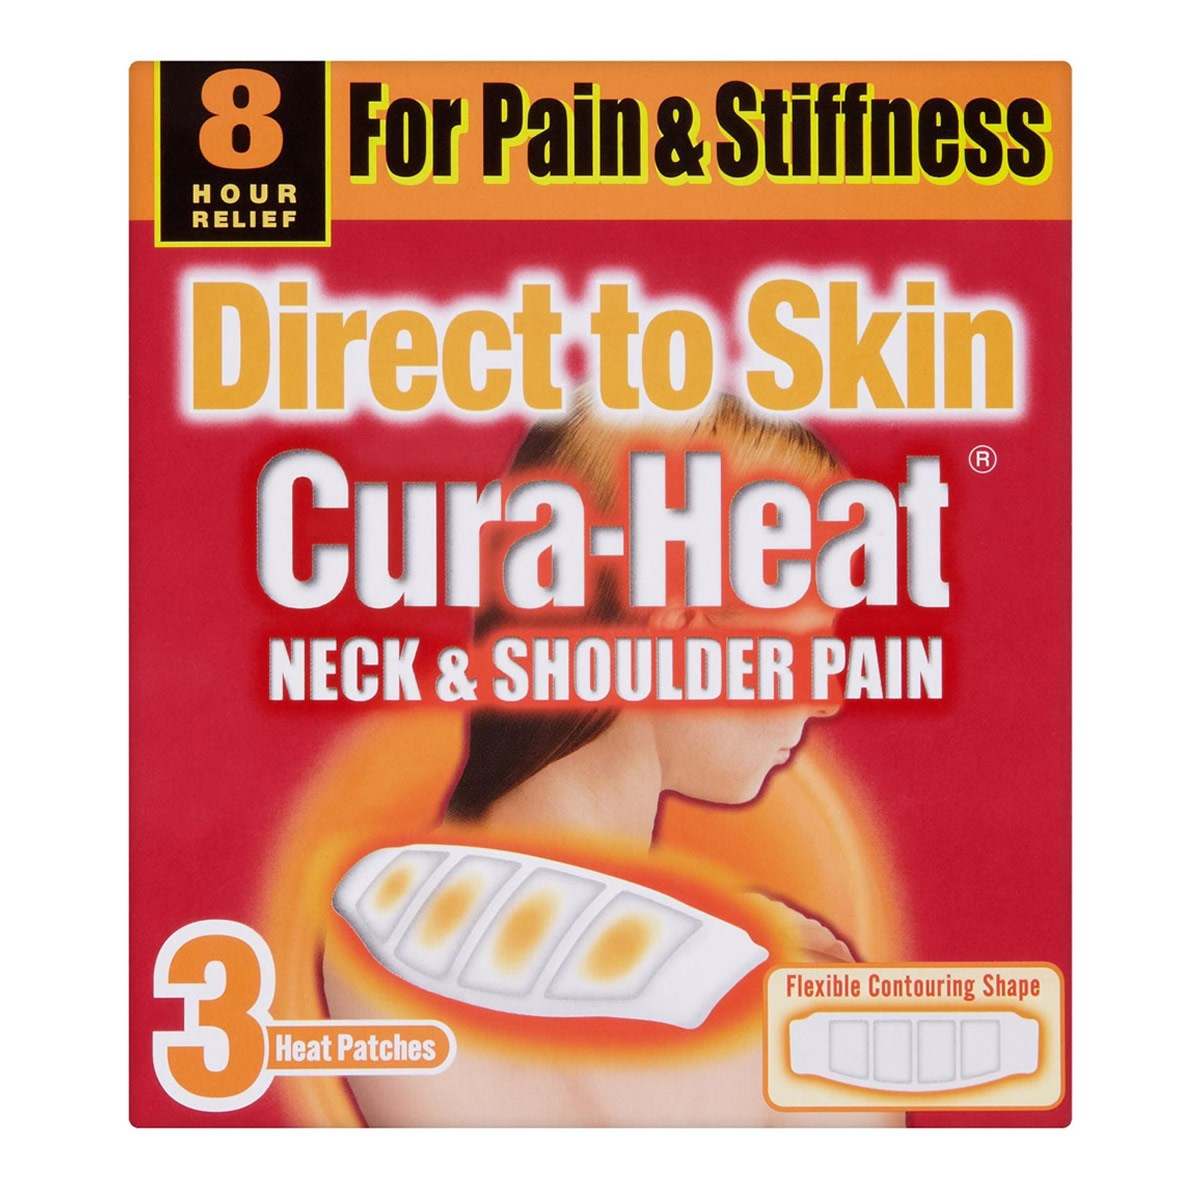 Cura-Heat Direct to Skin Neck & Shoulder Pain